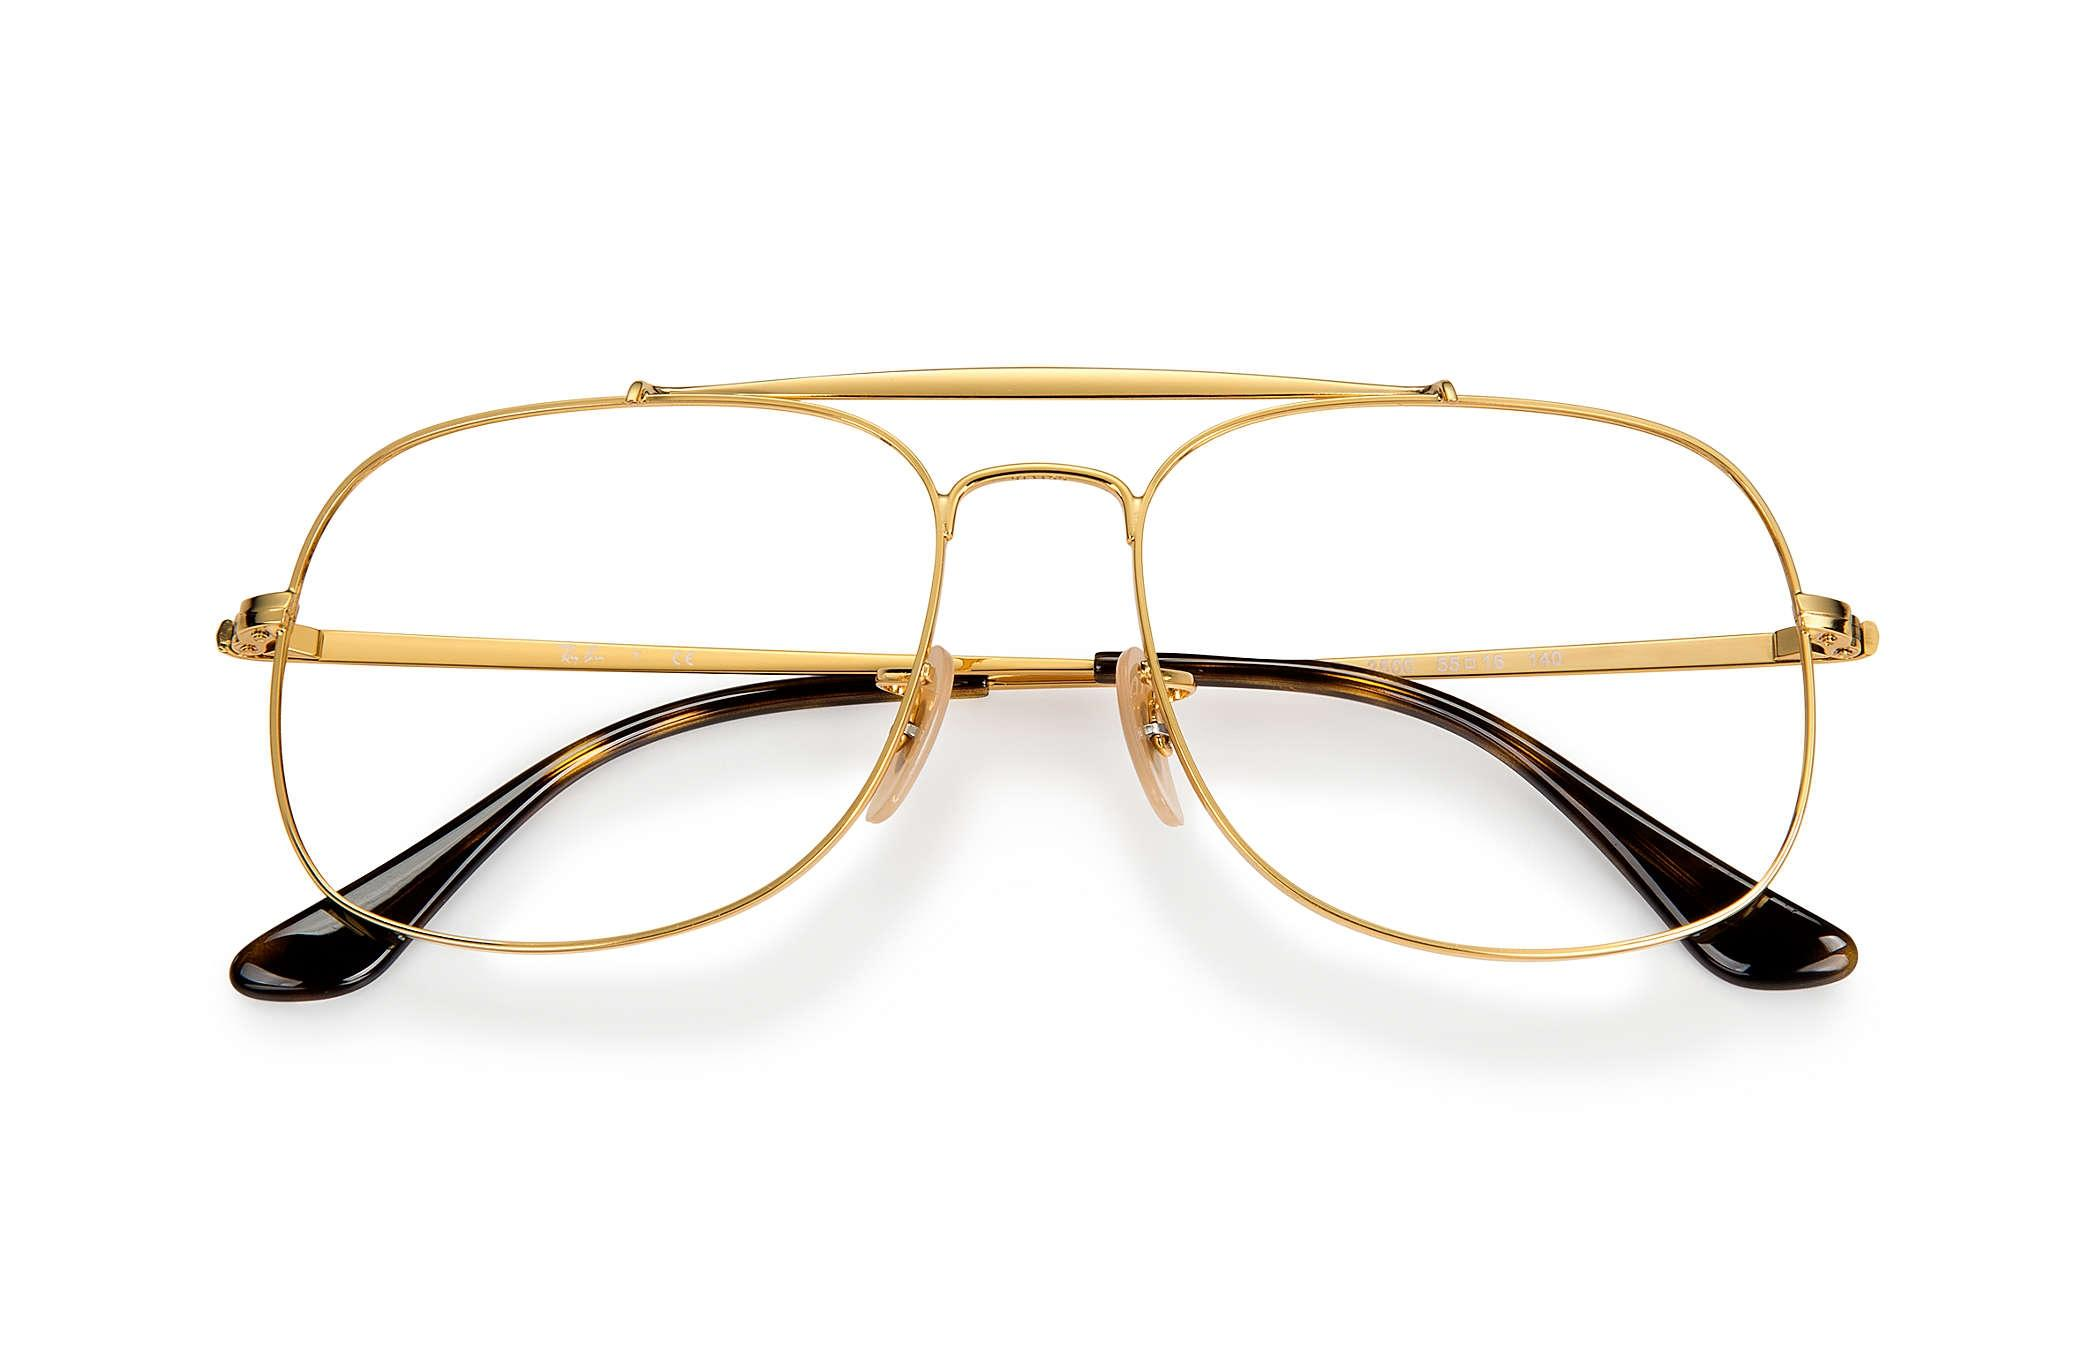 726cc1a987b ... germany ray ban new ray ban rb6389 square aviator gold eyeglasses frames  2f109 f414a